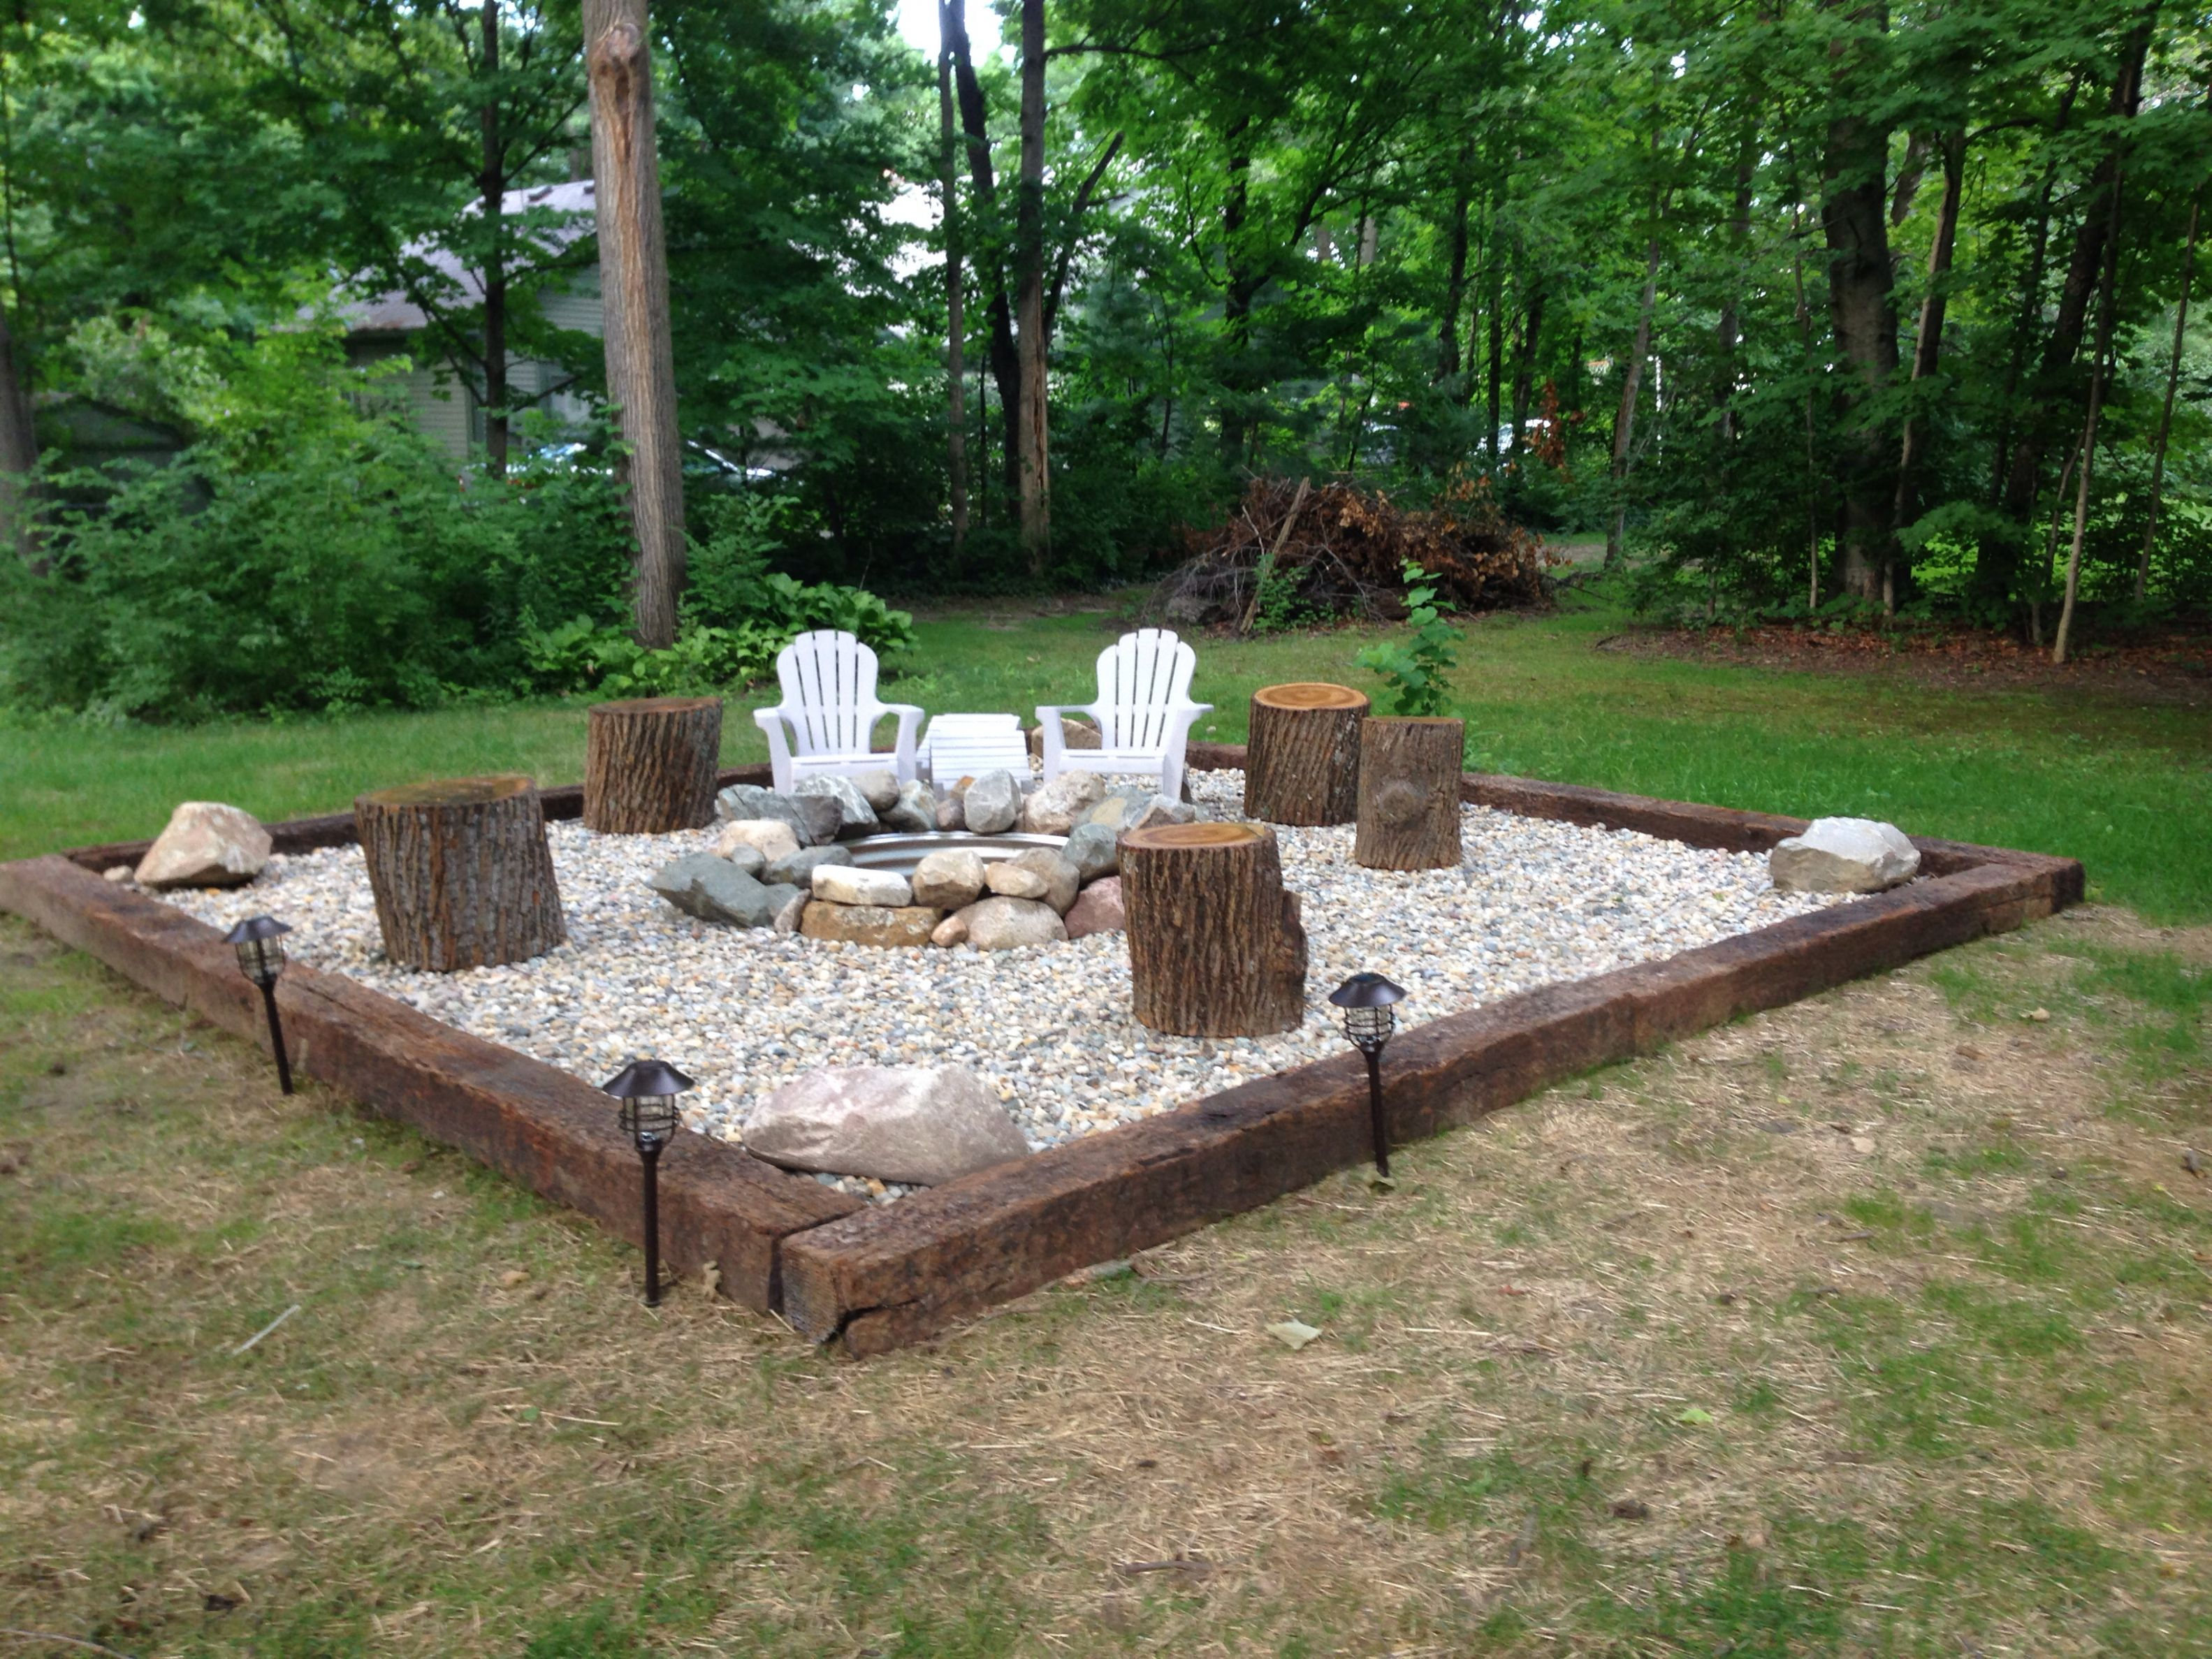 15 outstanding cinder block fire pit design ideas for outdoor fire pit area backyard and cozy - Types fire pits cozy outdoor spaces ...